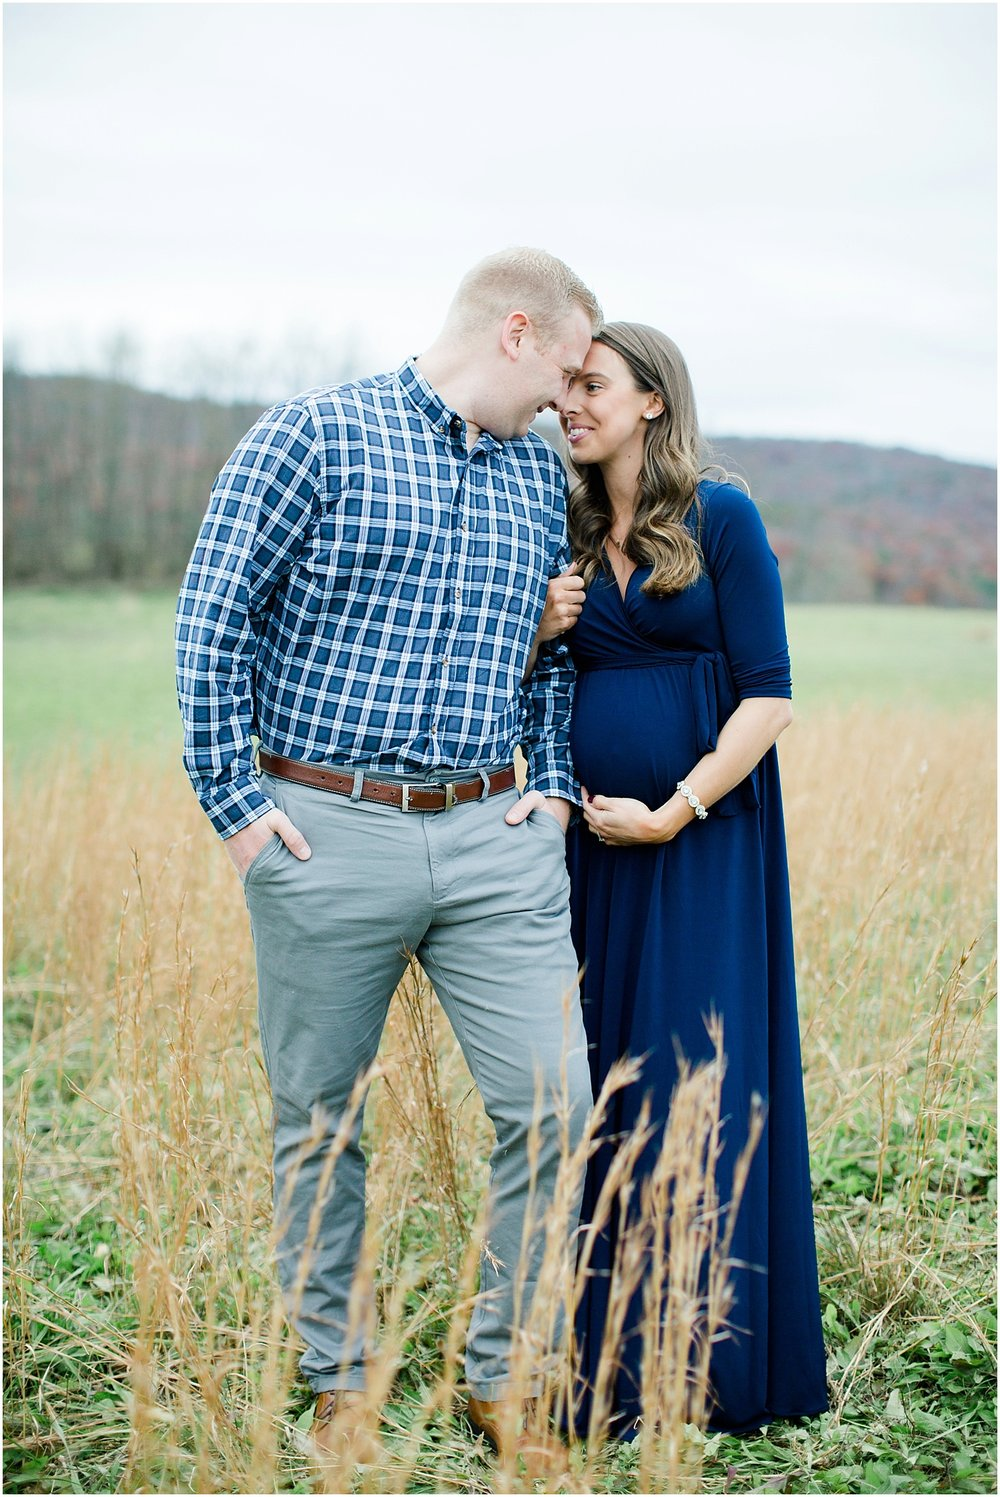 Ashley Powell Photography Hannah Fallion Maternity Blog Images_0064.jpg